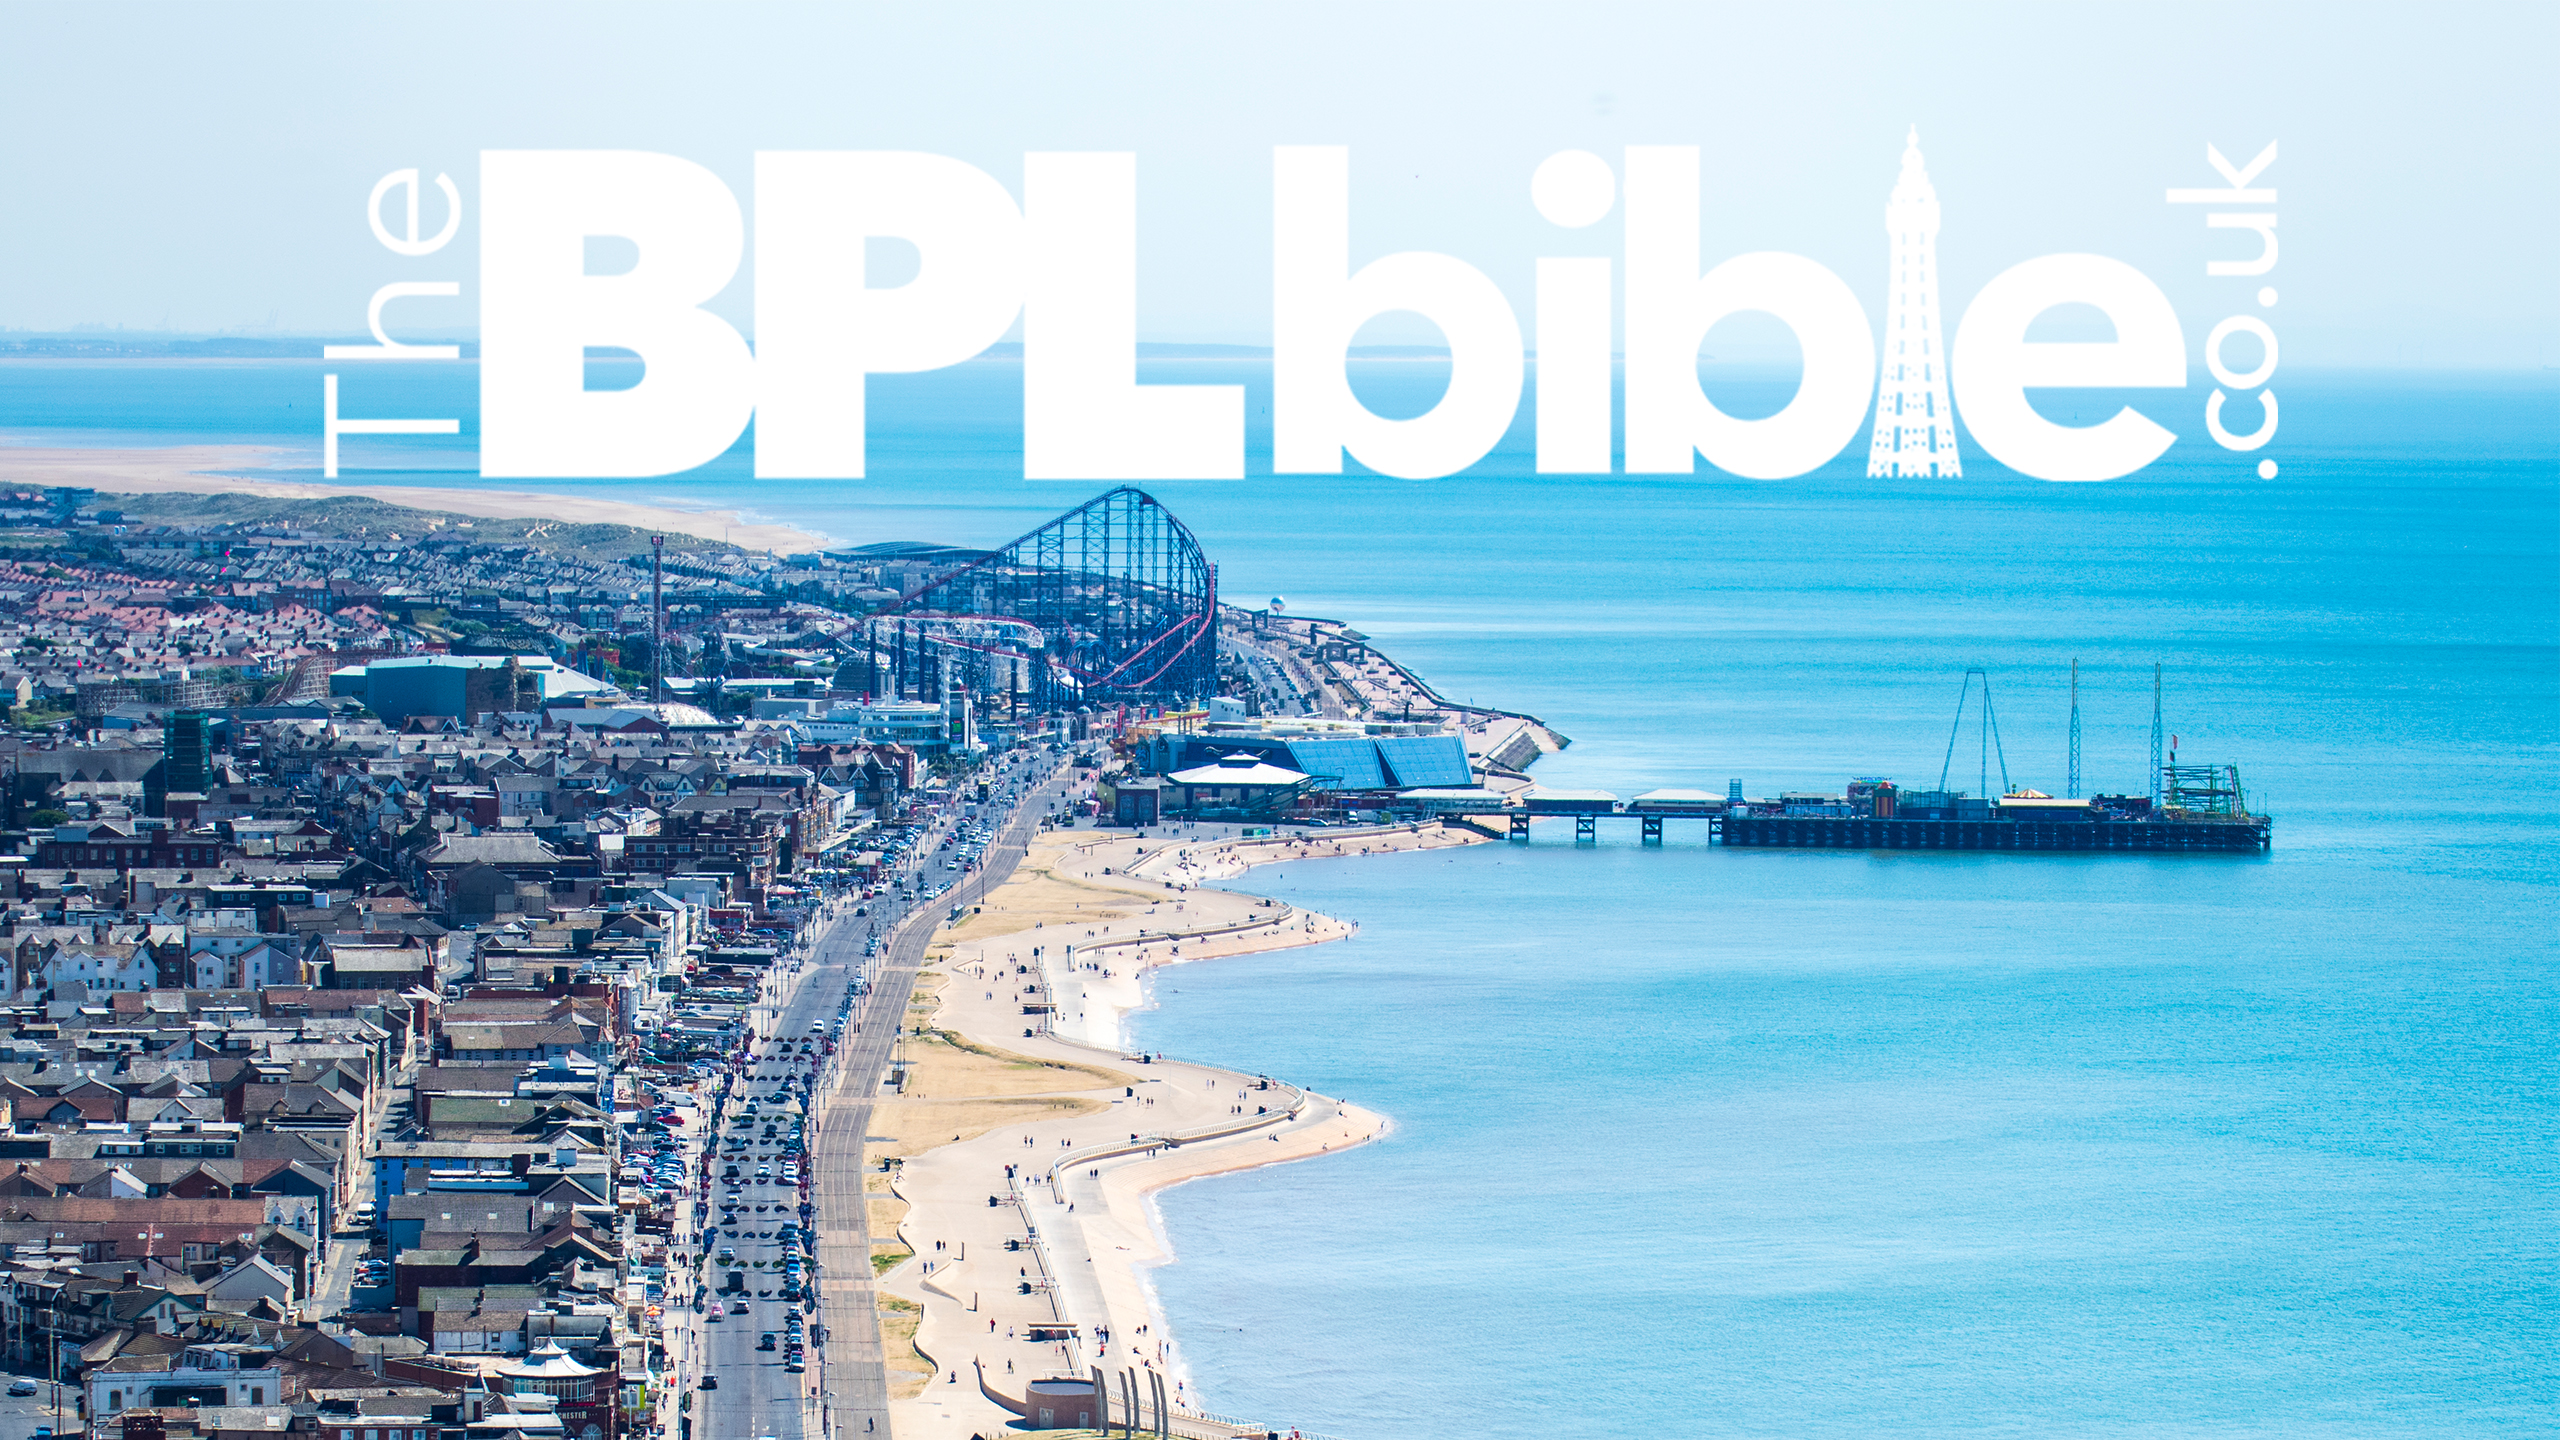 The BPL Bible Blackpool Youtube Channel